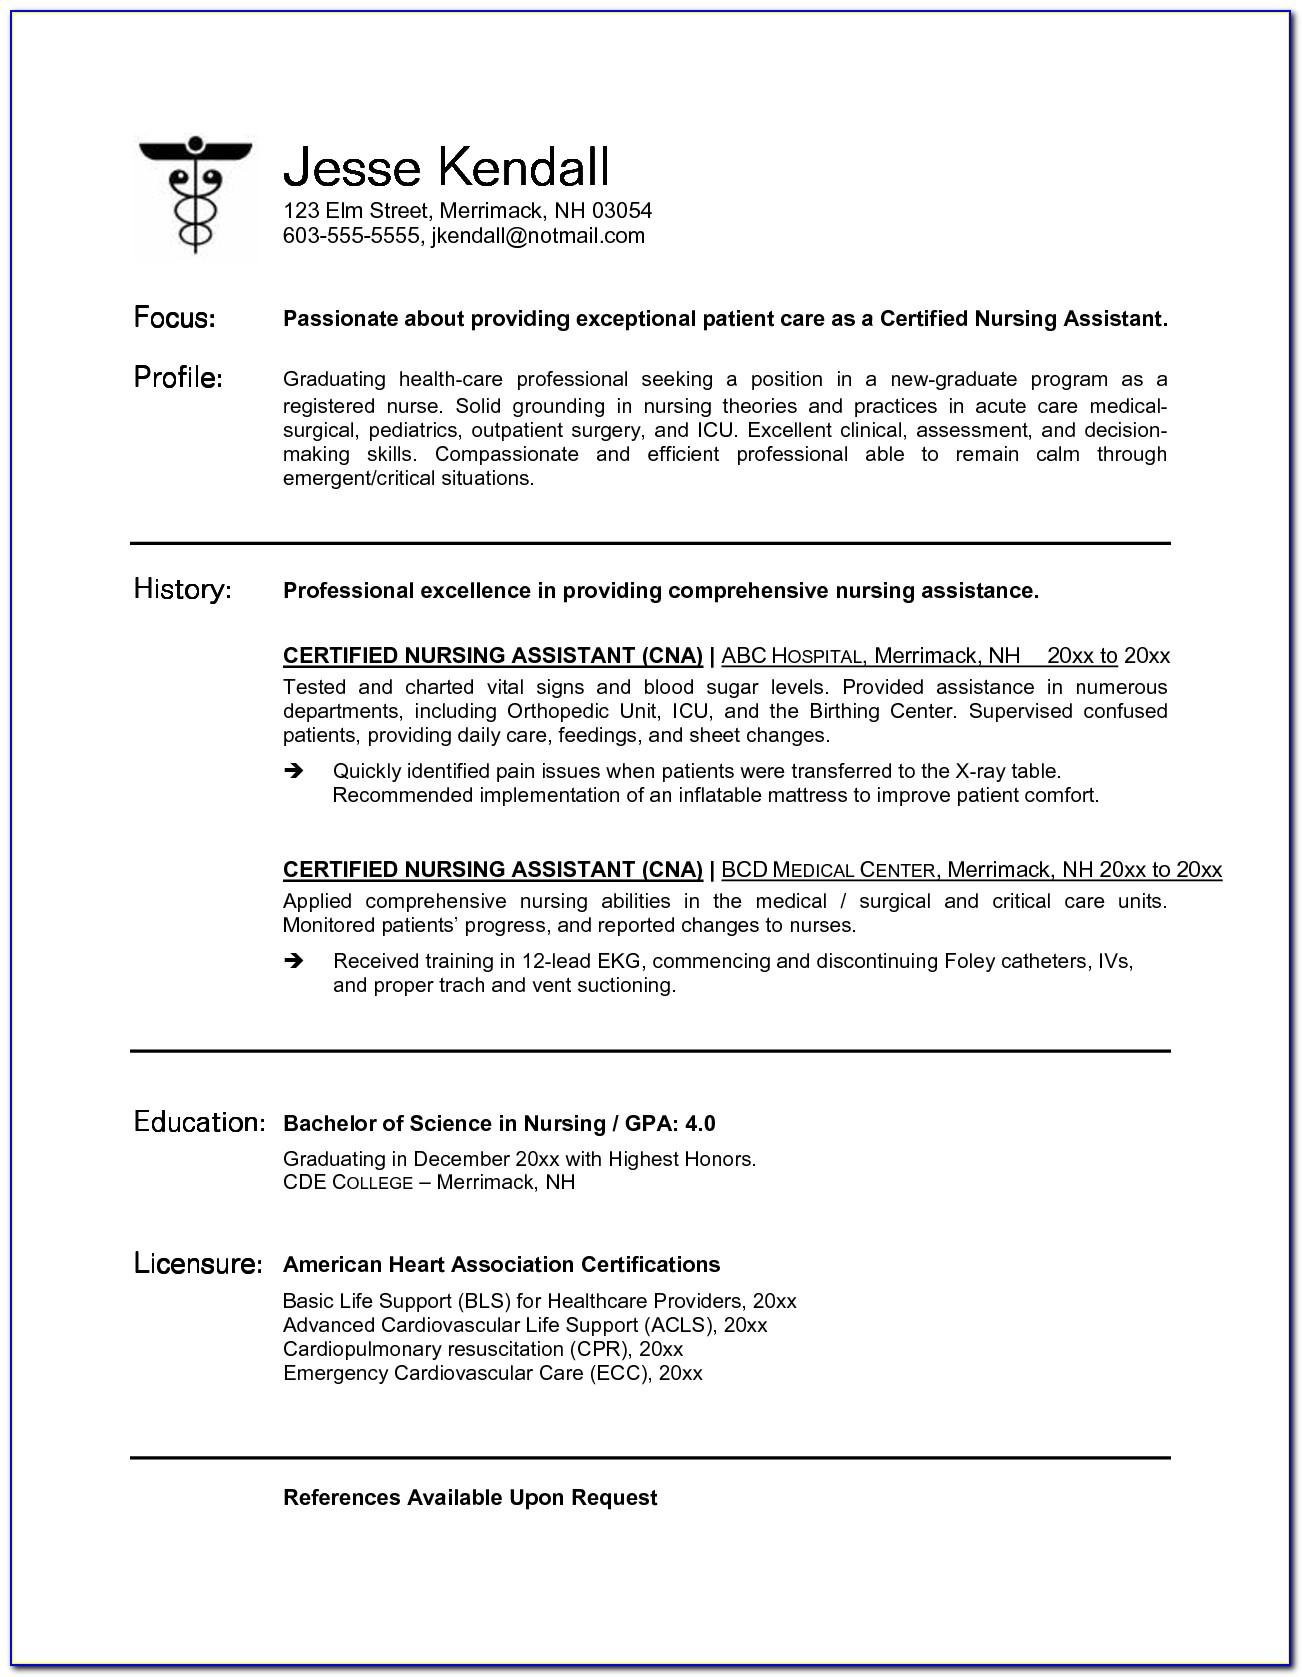 Resume Format Sample Free Download